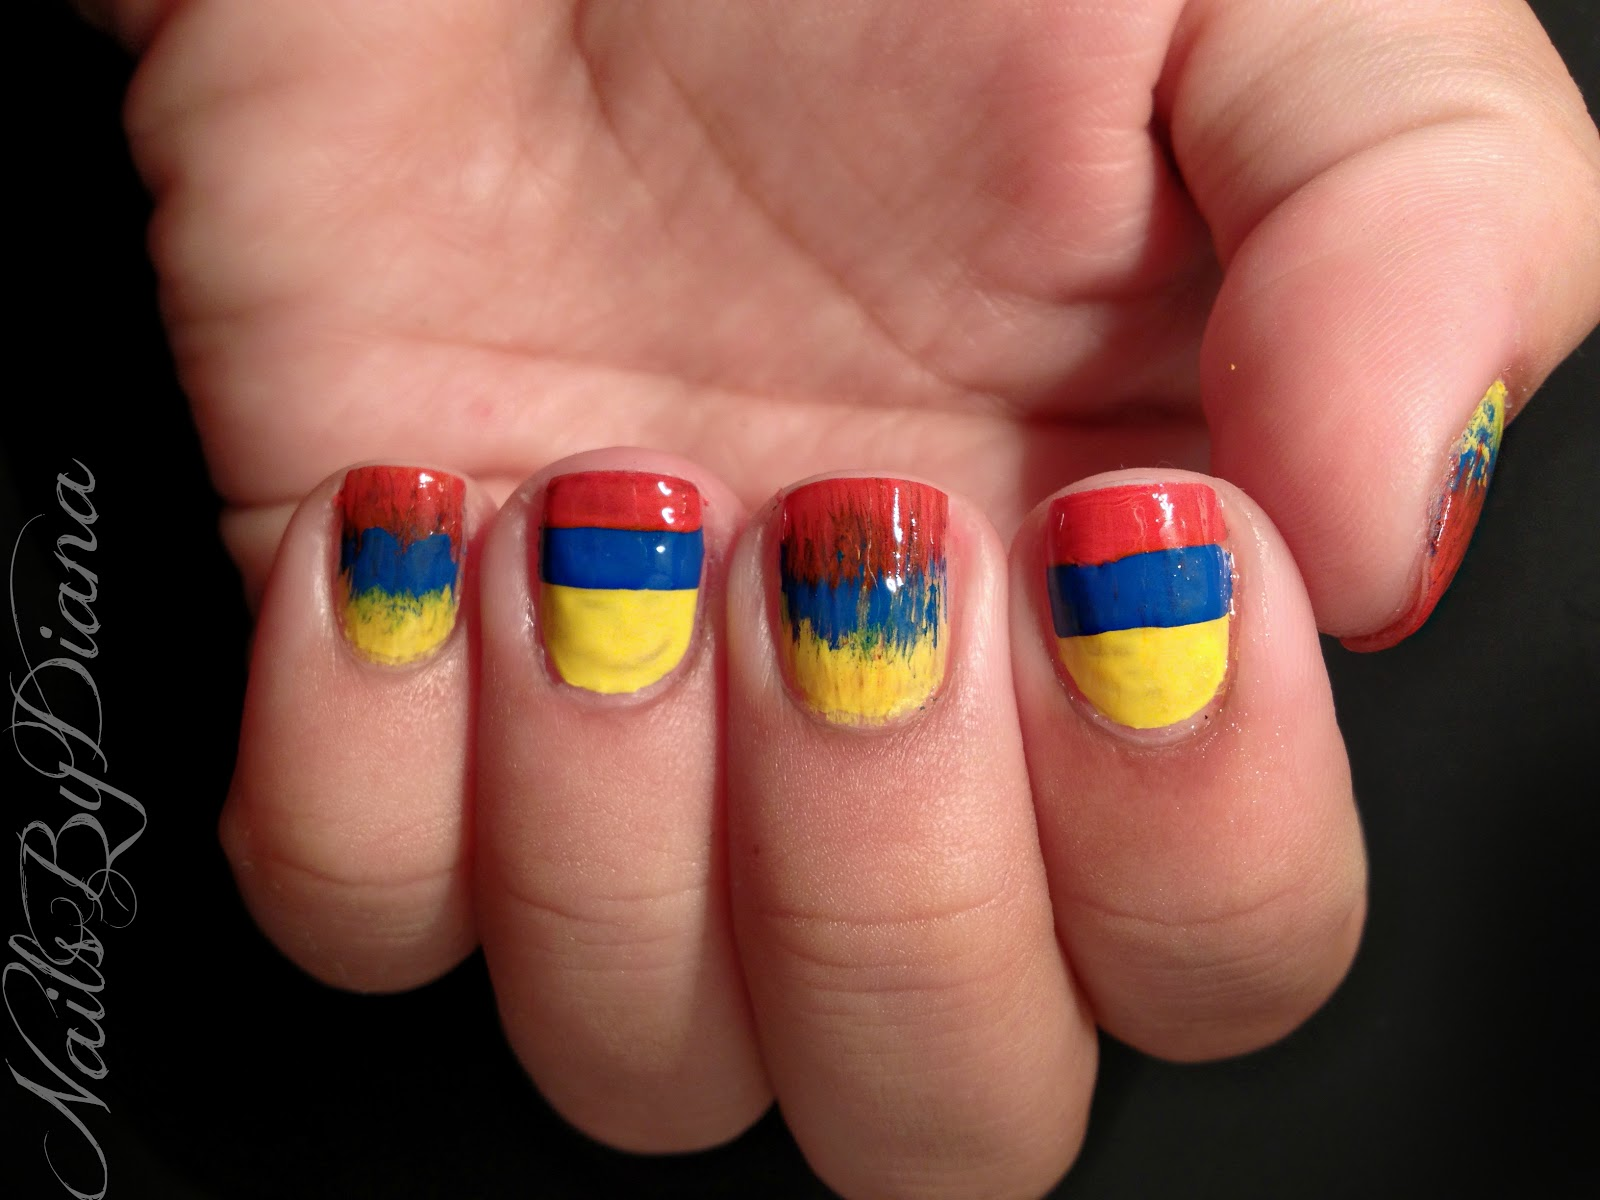 Nailsbydiana 31 Day Challengeday 28 Inspired By A Flag